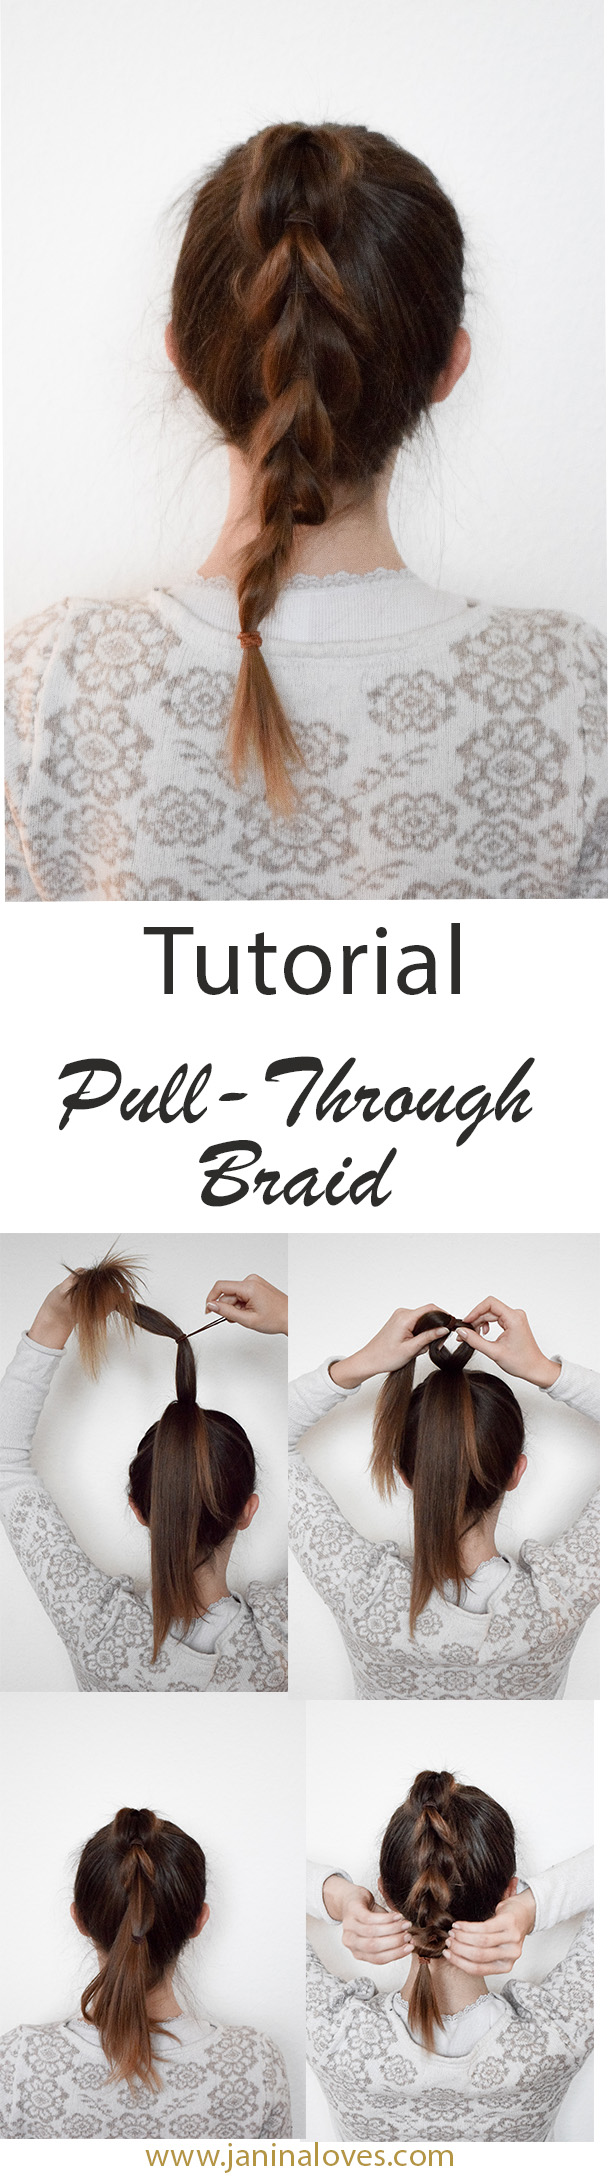 Pullthrough Braid Tutorial | Einfach & ohne flechten